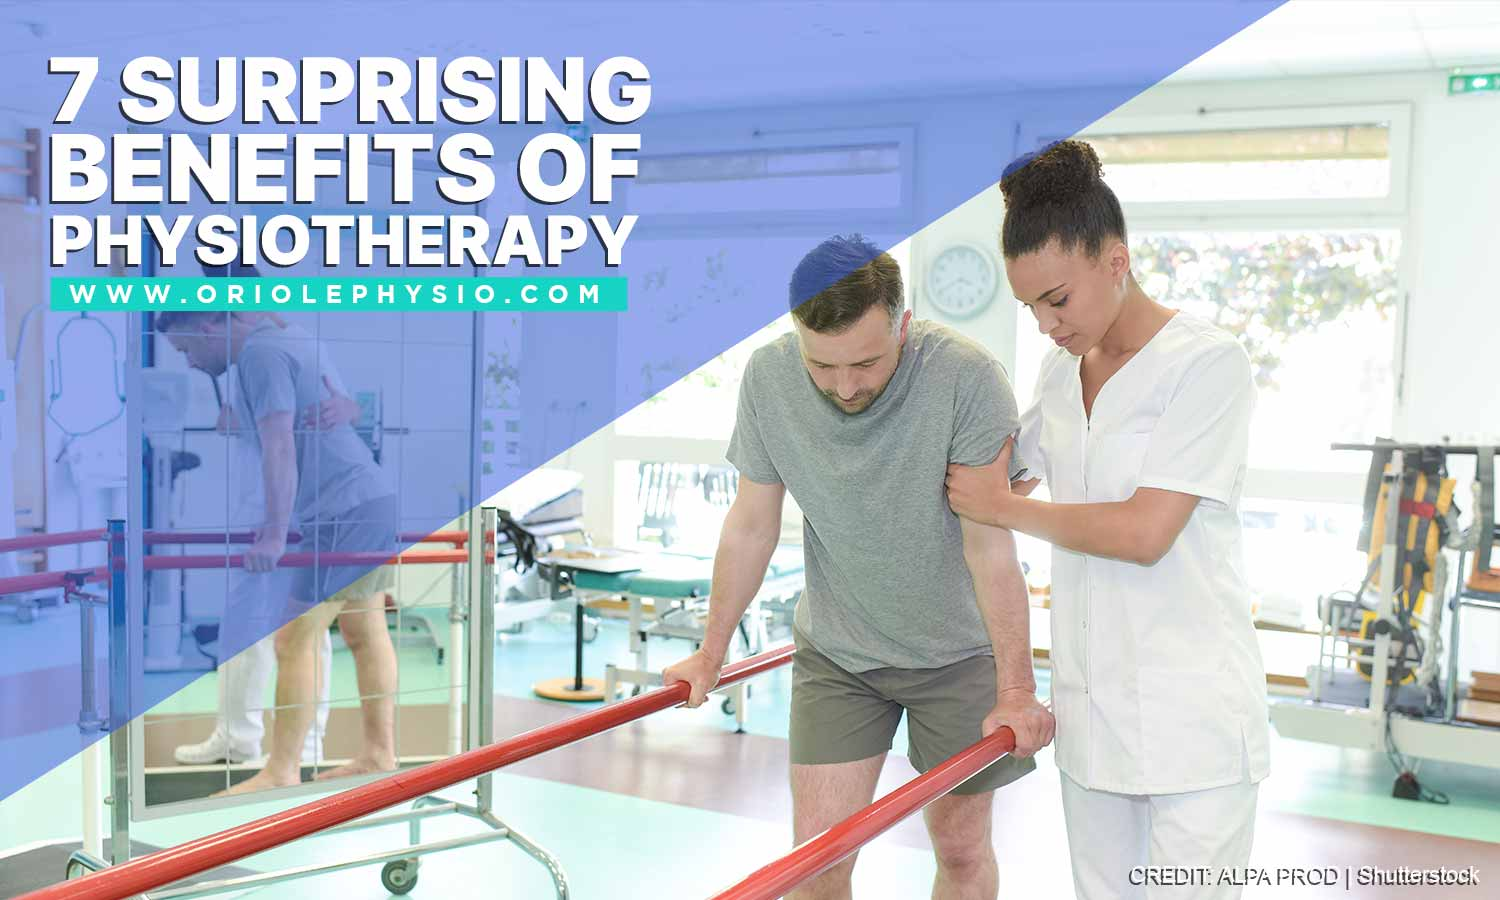 7 Surprising Benefits of Physiotherapy